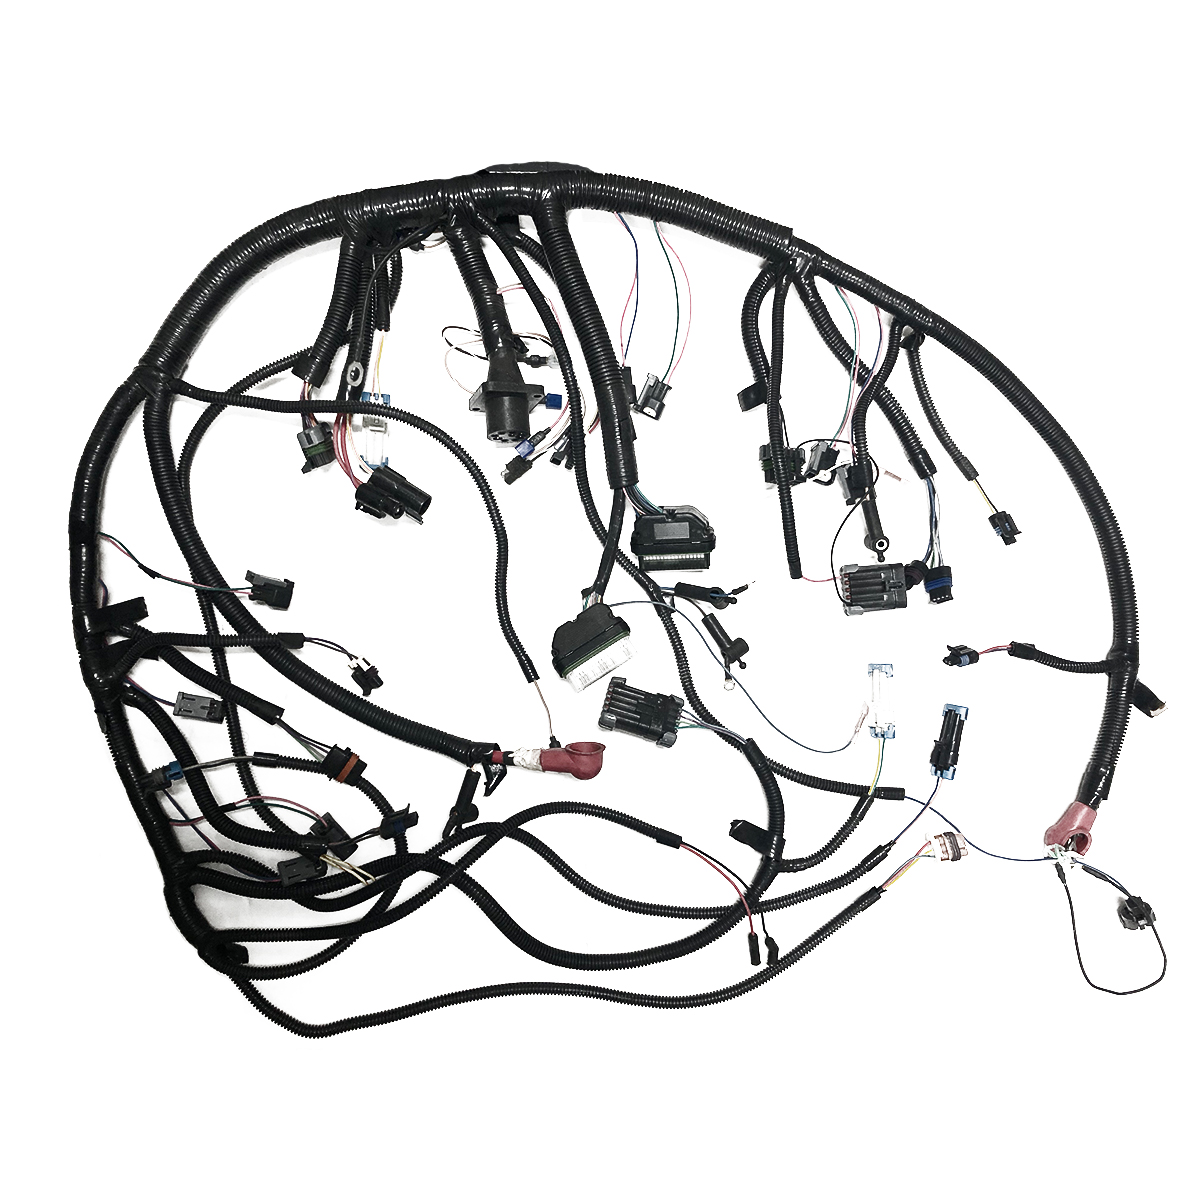 marineenginedepot Delphi Packard Connector Male Hei wire harness mefi4 replacement w o box